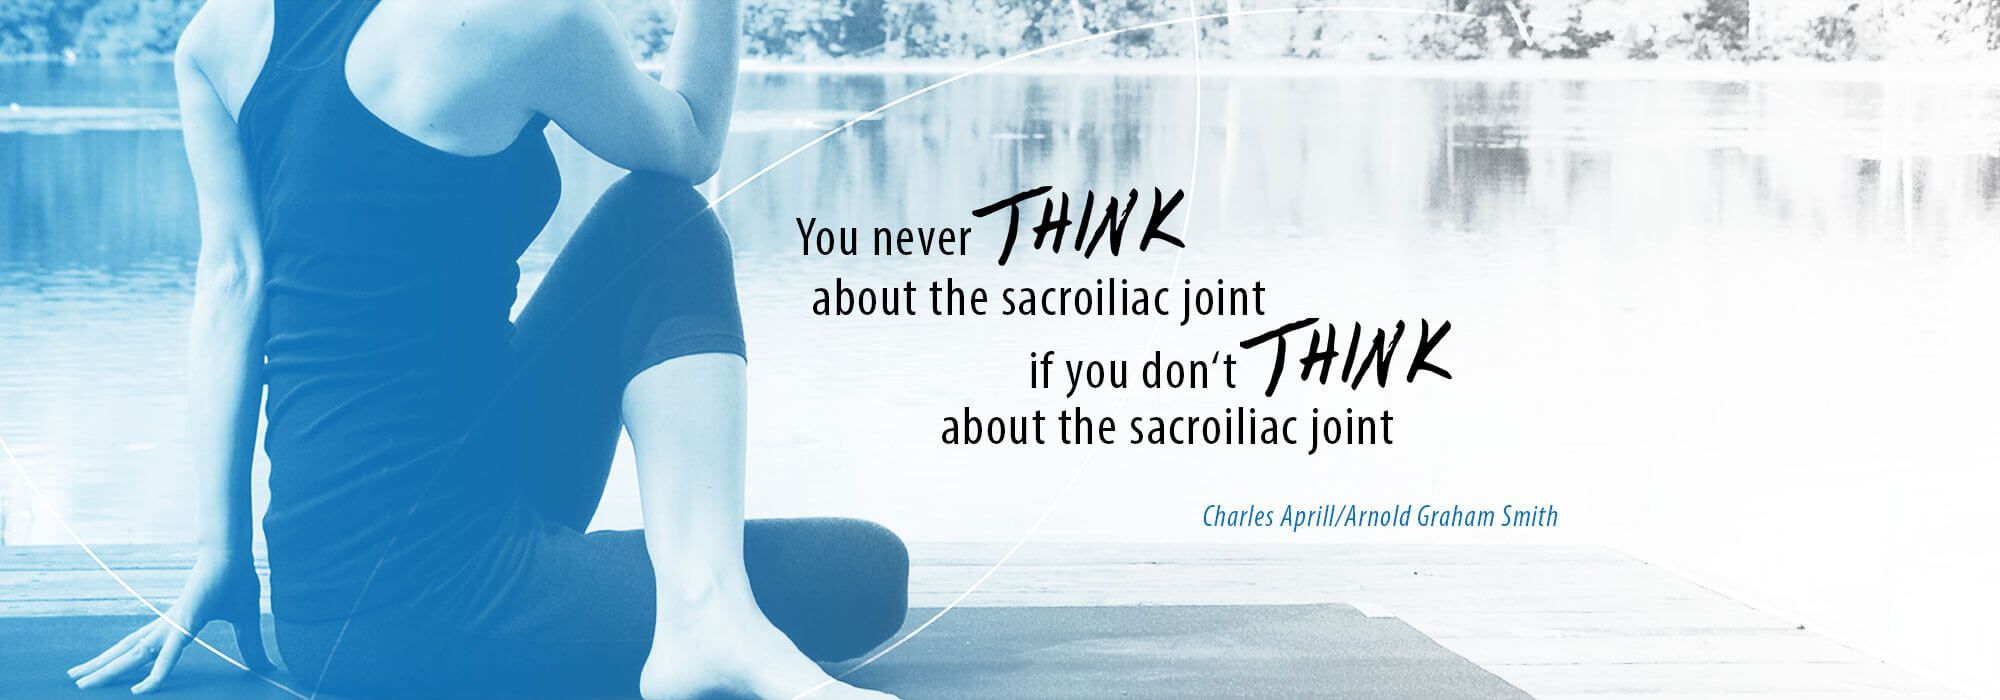 You never think about the sacroiliac joint if you dont think about the sacroiliac joint - Charles Aprill / Arnold Graham Smith